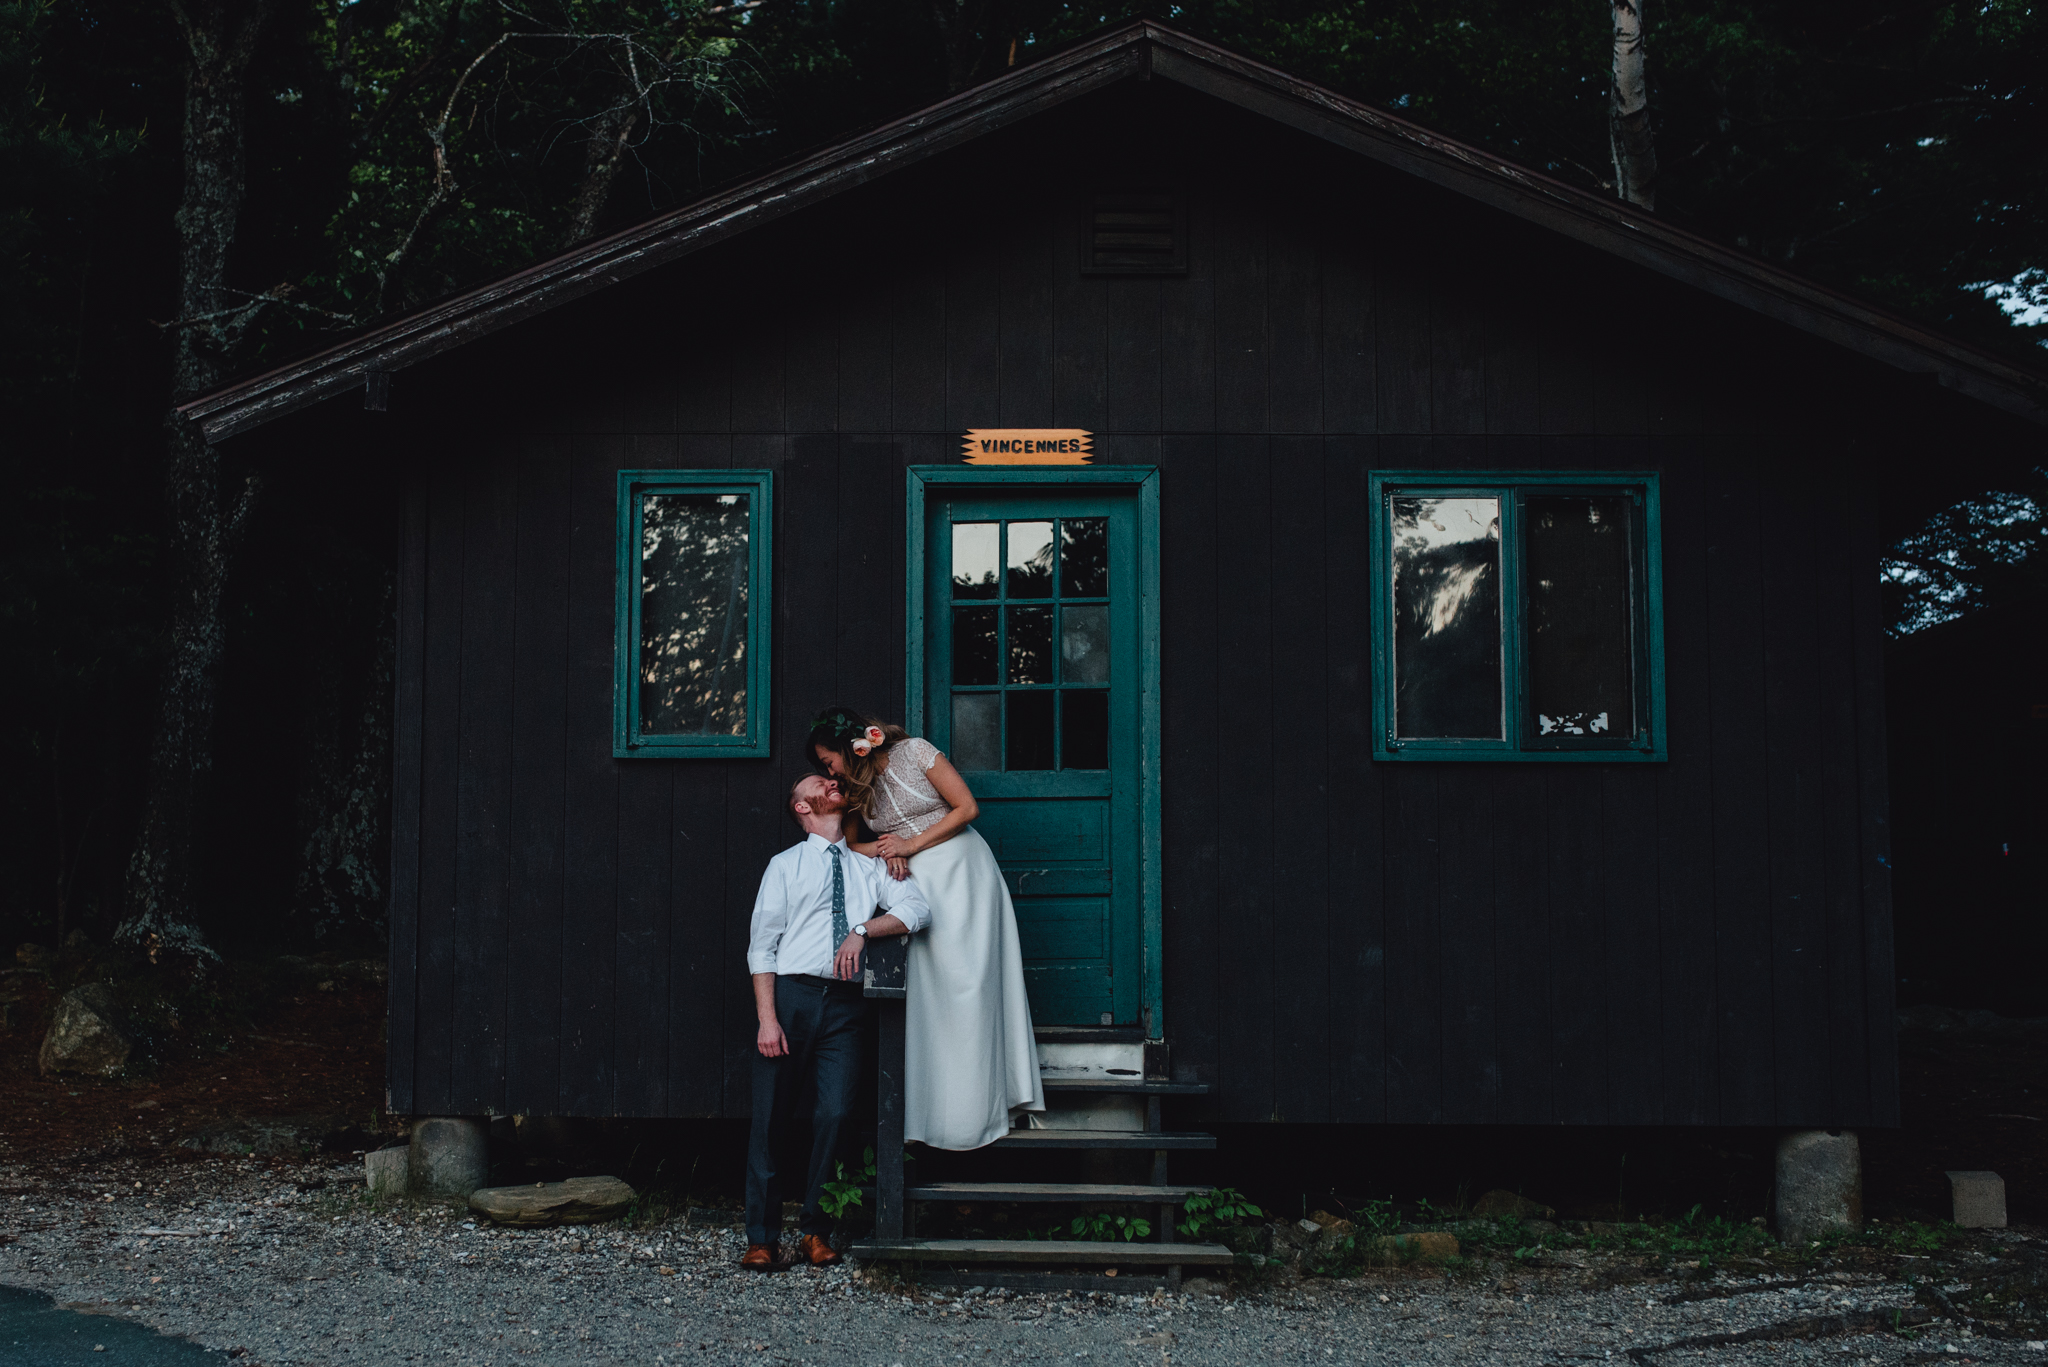 Summer Camp Wedding Photography June 2017 Massachusetts Berkshires Outdoor Wedding Photography Novella Photography Matt and Paulette Griswold (180).jpg